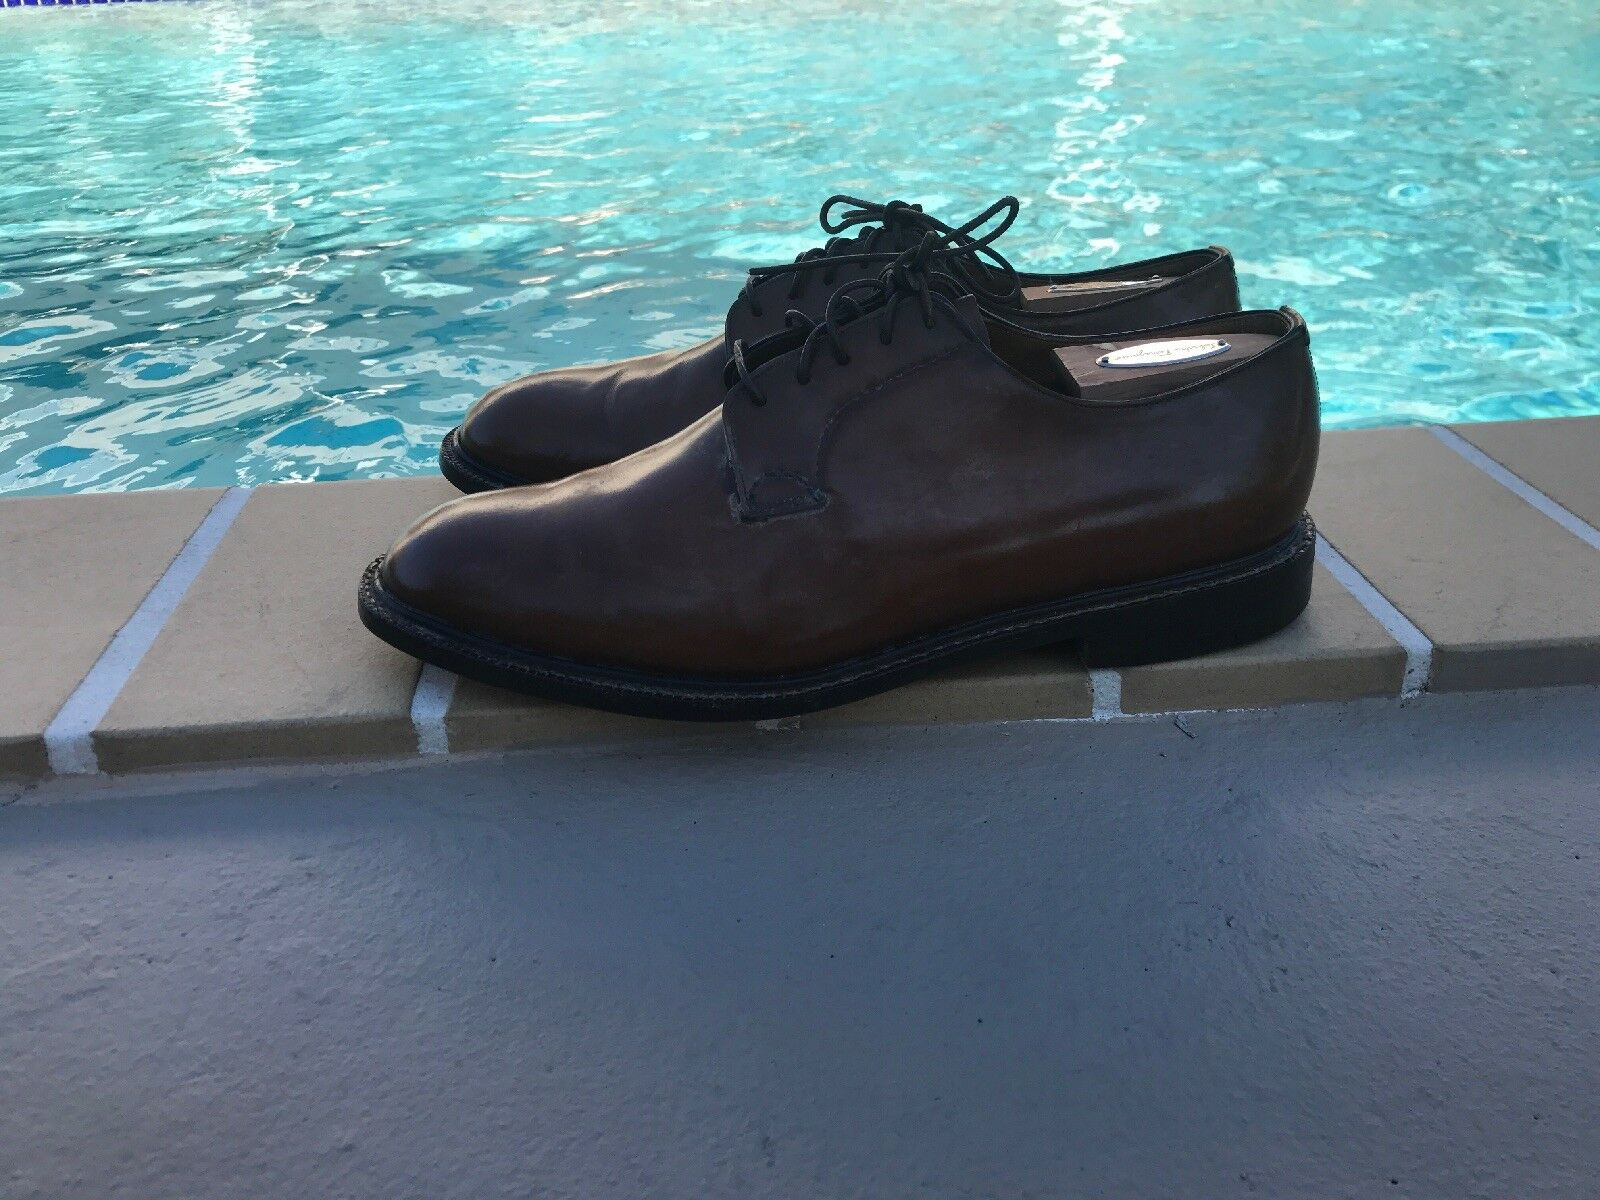 CHURCHS HANDMADE BROWN LEATHER LACED LOAFER DRESS SHOES Sz  8 9 MADE IN ENGLAND